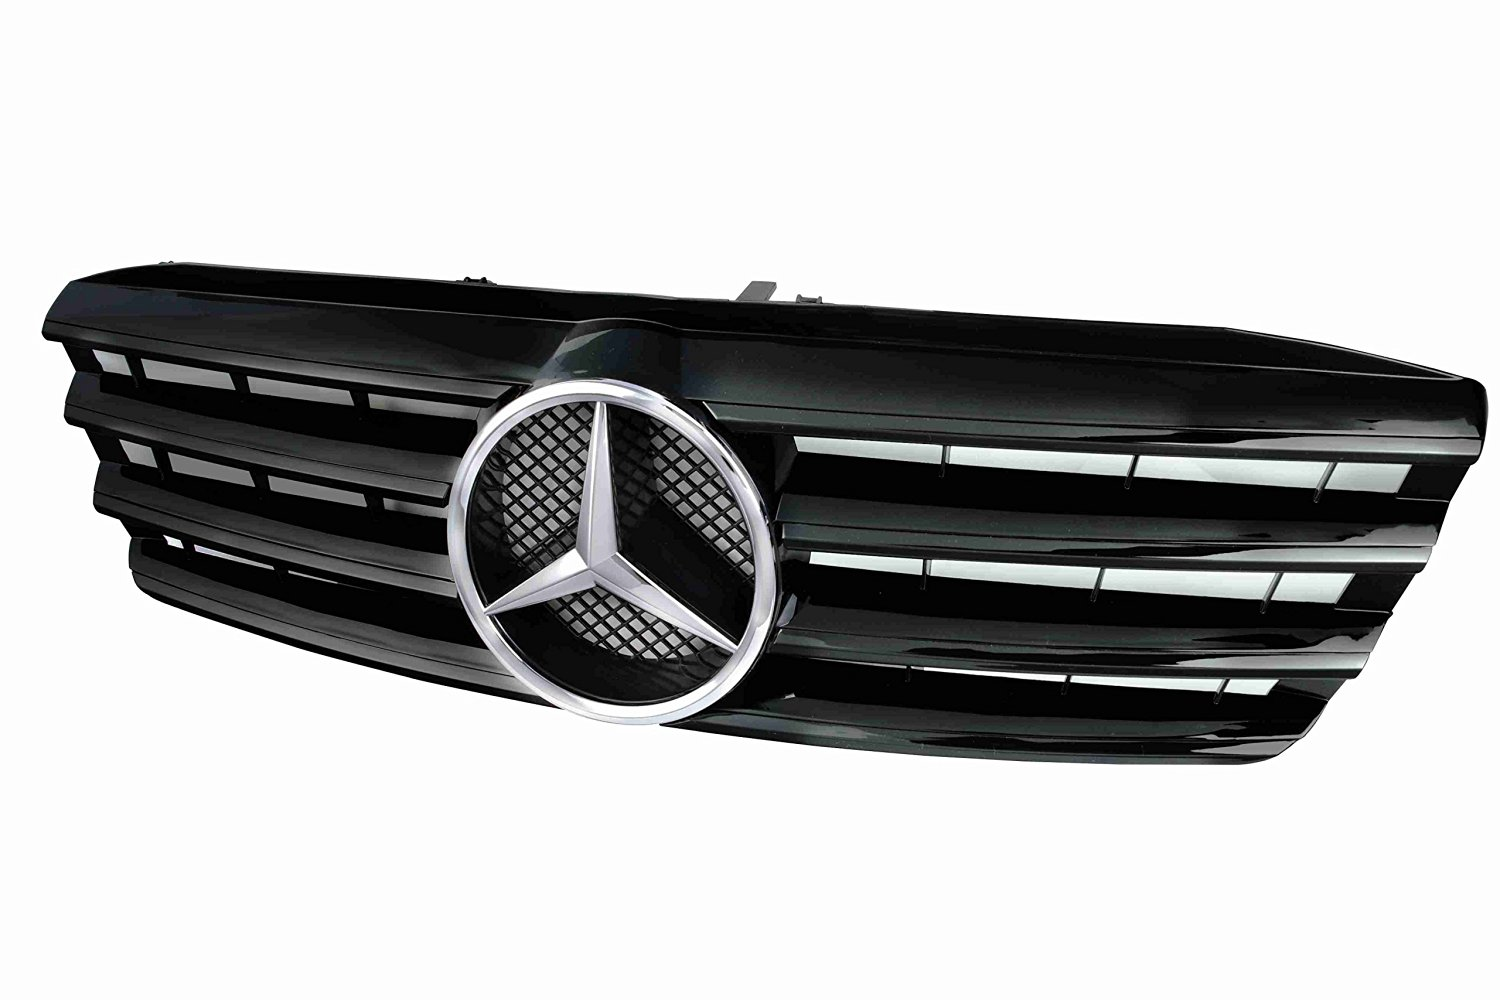 hight resolution of get quotations for mercedes benz w203 c class sport grille all black c200 c230 c240 c280 c320 c350